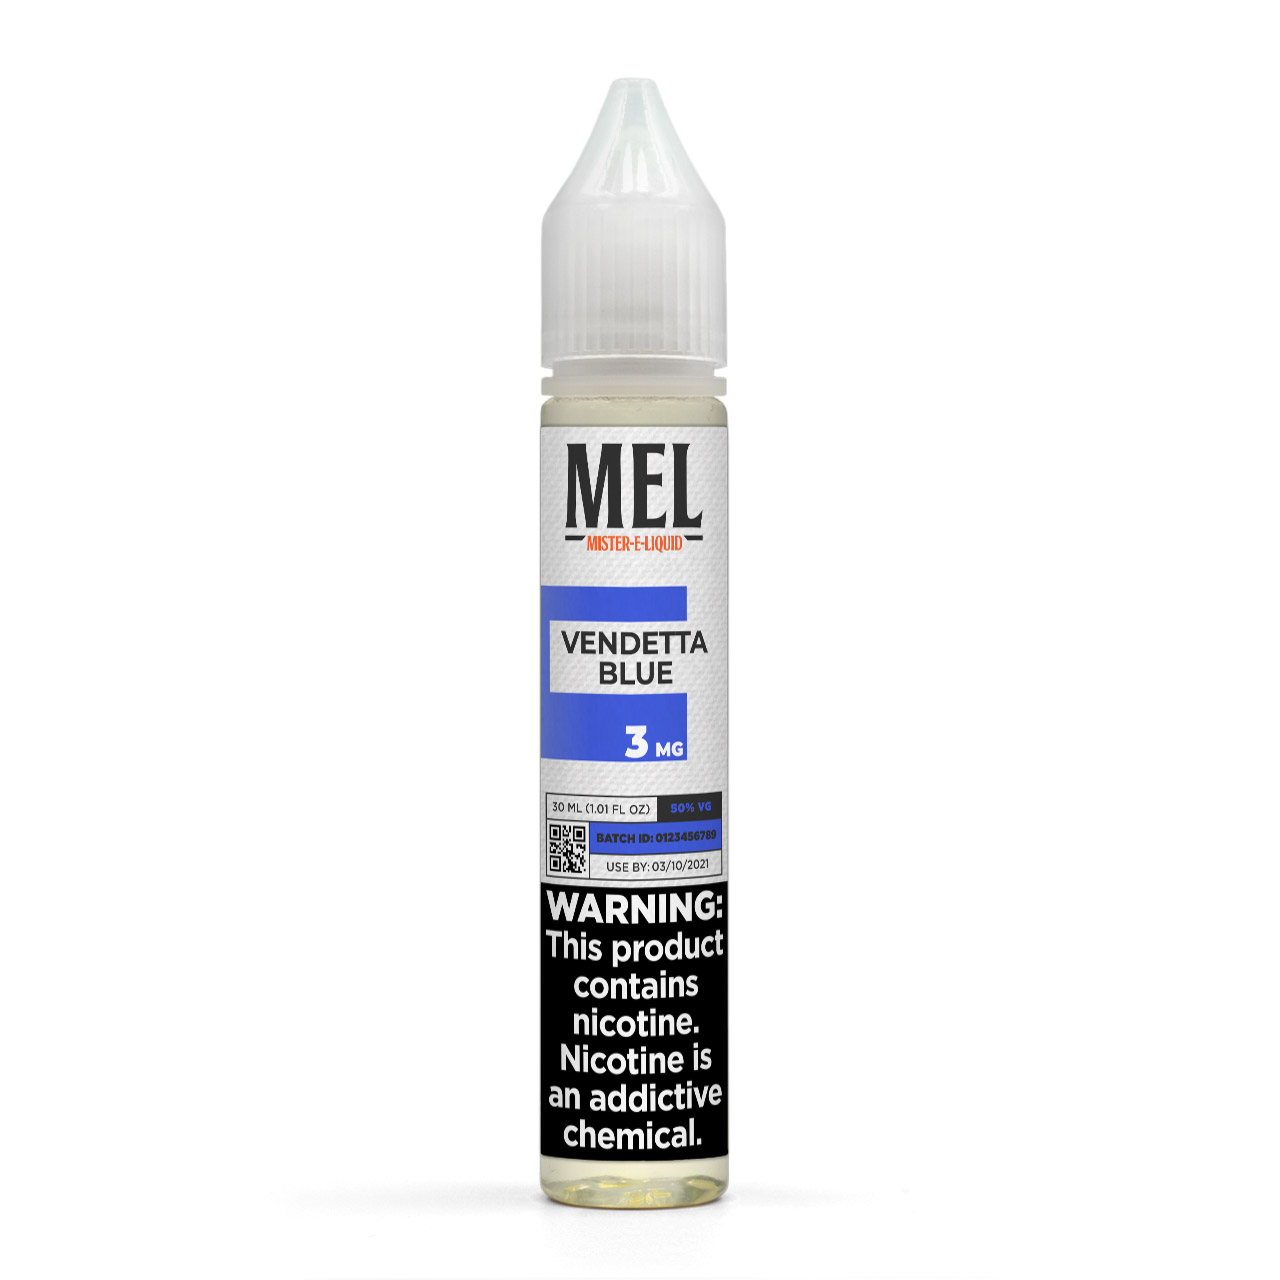 MEL Vendetta Blue Vape Juice, 3 mg